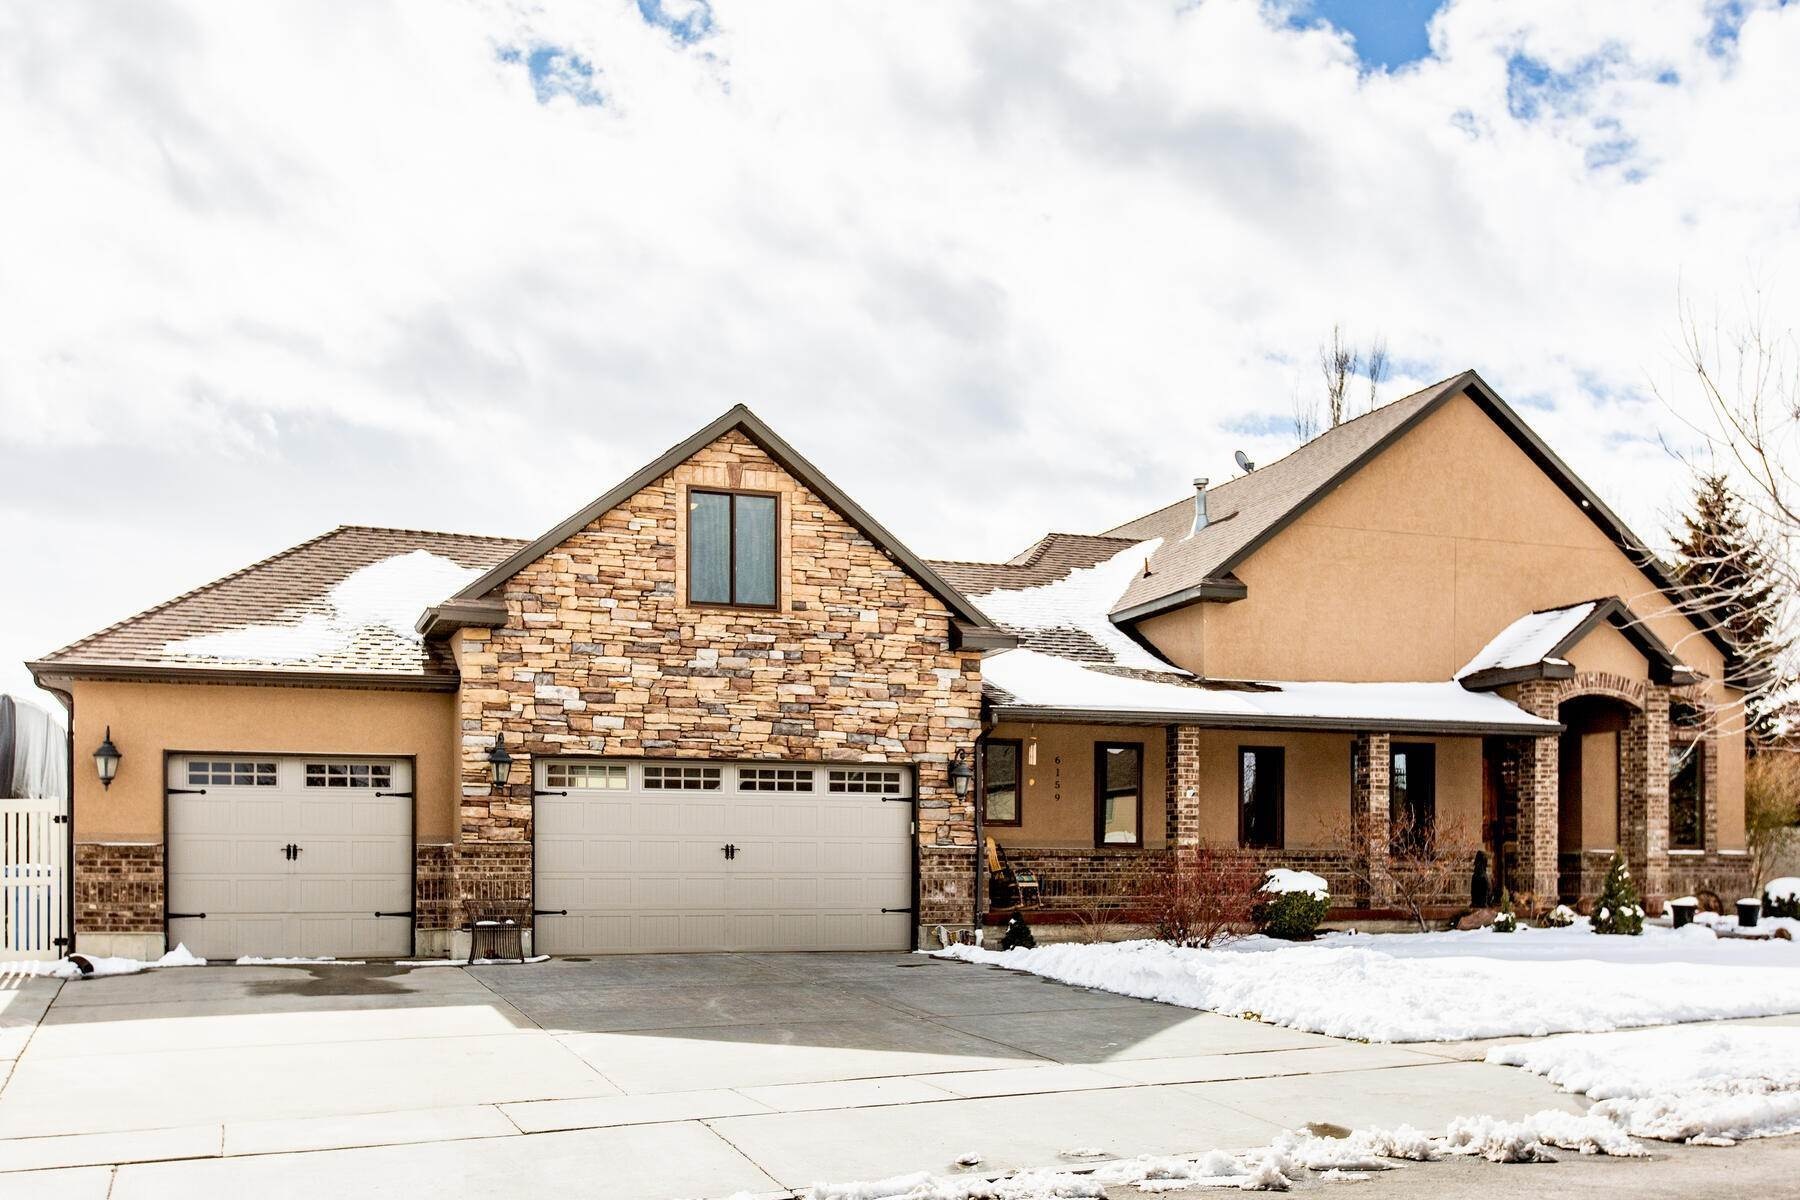 Single Family Homes for Sale at Quiet seclusion in Salt Lake County 6159 W Heritage Hill Drive Herriman, Utah 84096 United States